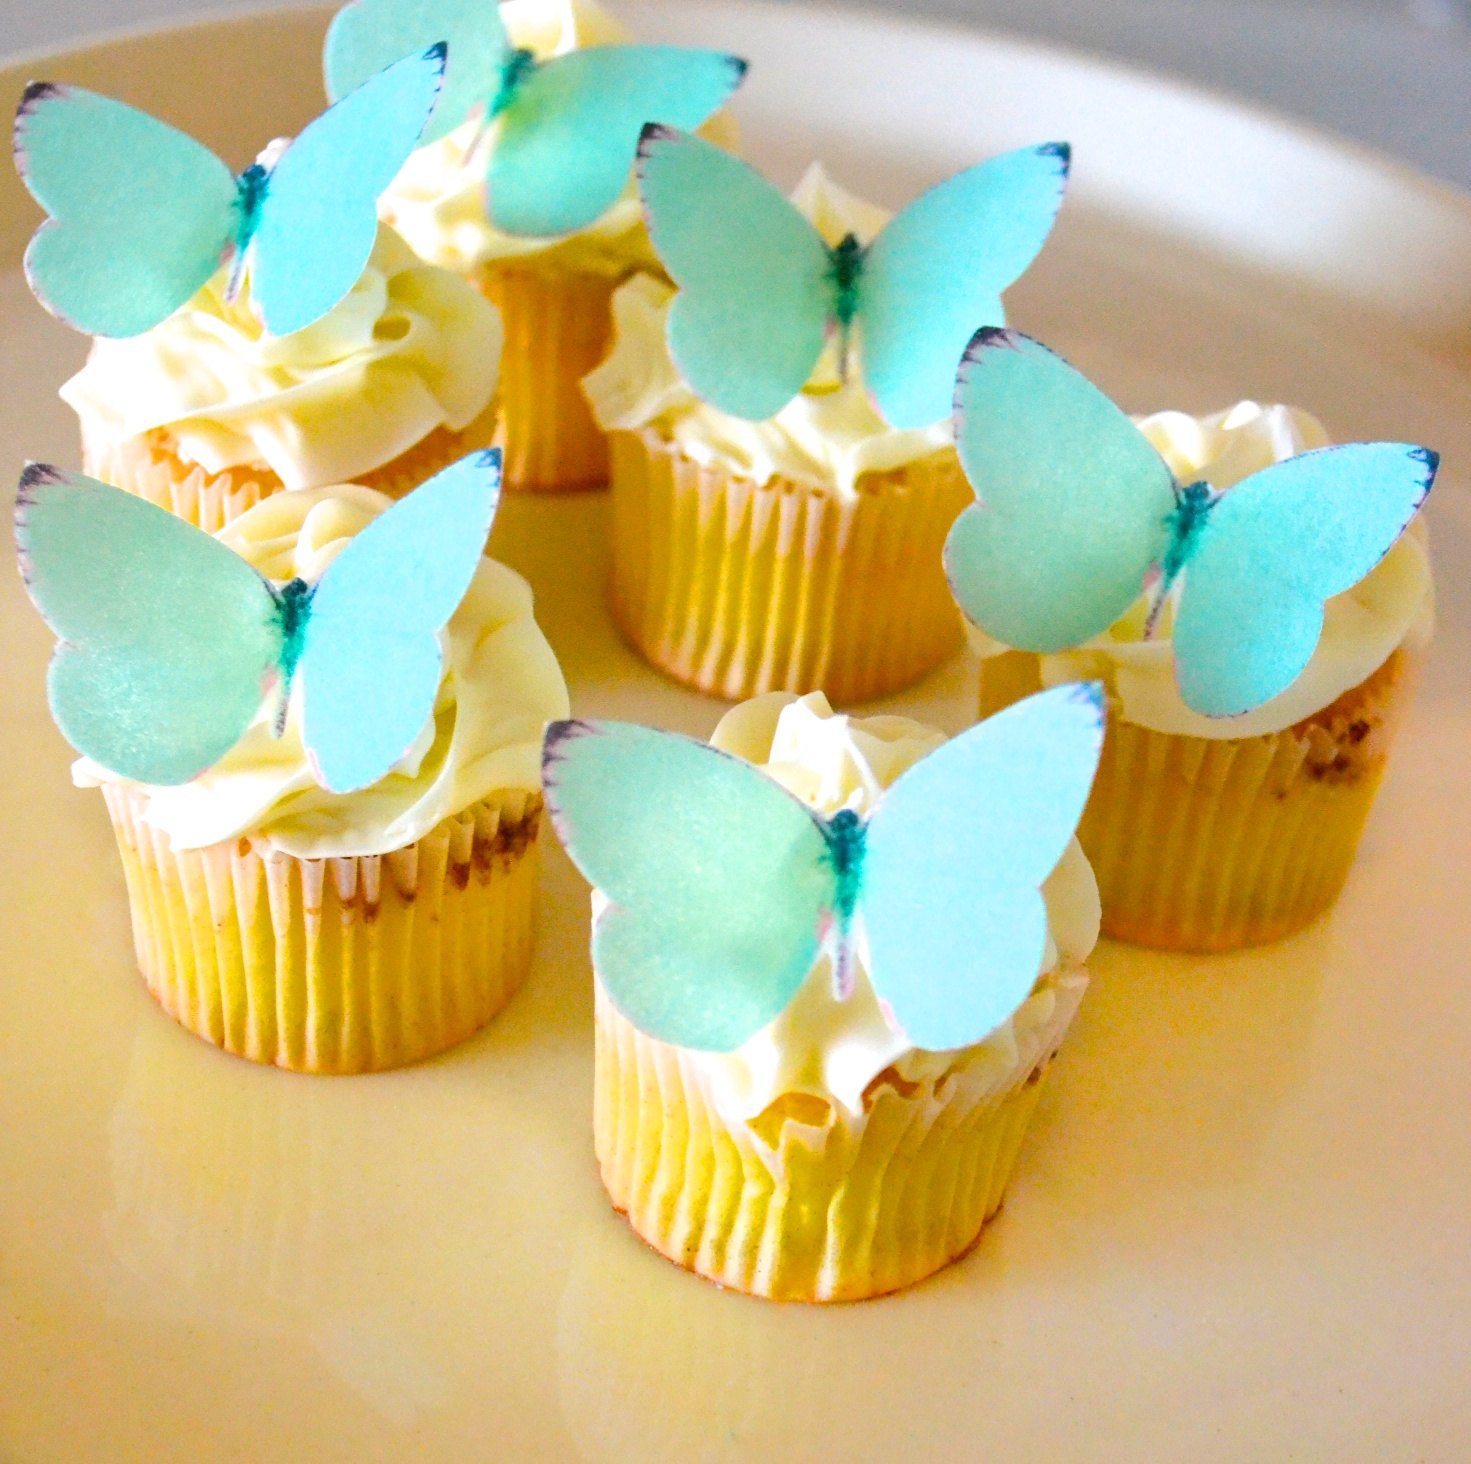 Edible Butterflies - Small Teal Color Set of 24 - Cake and Cupcake Toppers, Decoration